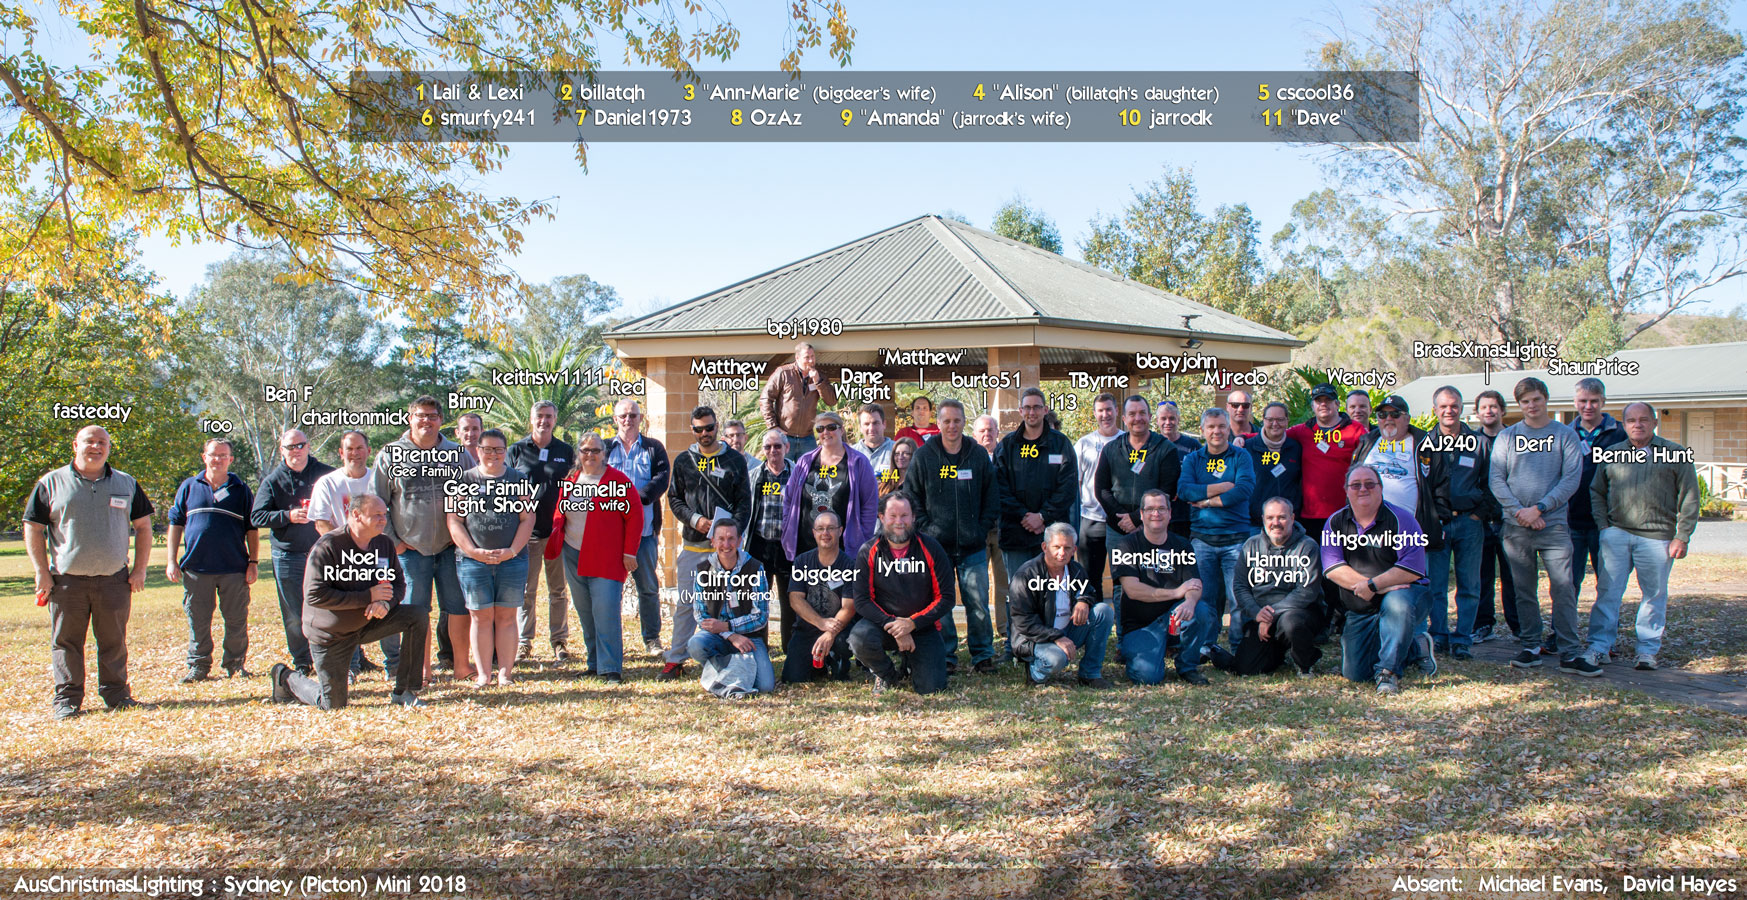 2018 Sydney Mini (Picton) attendees